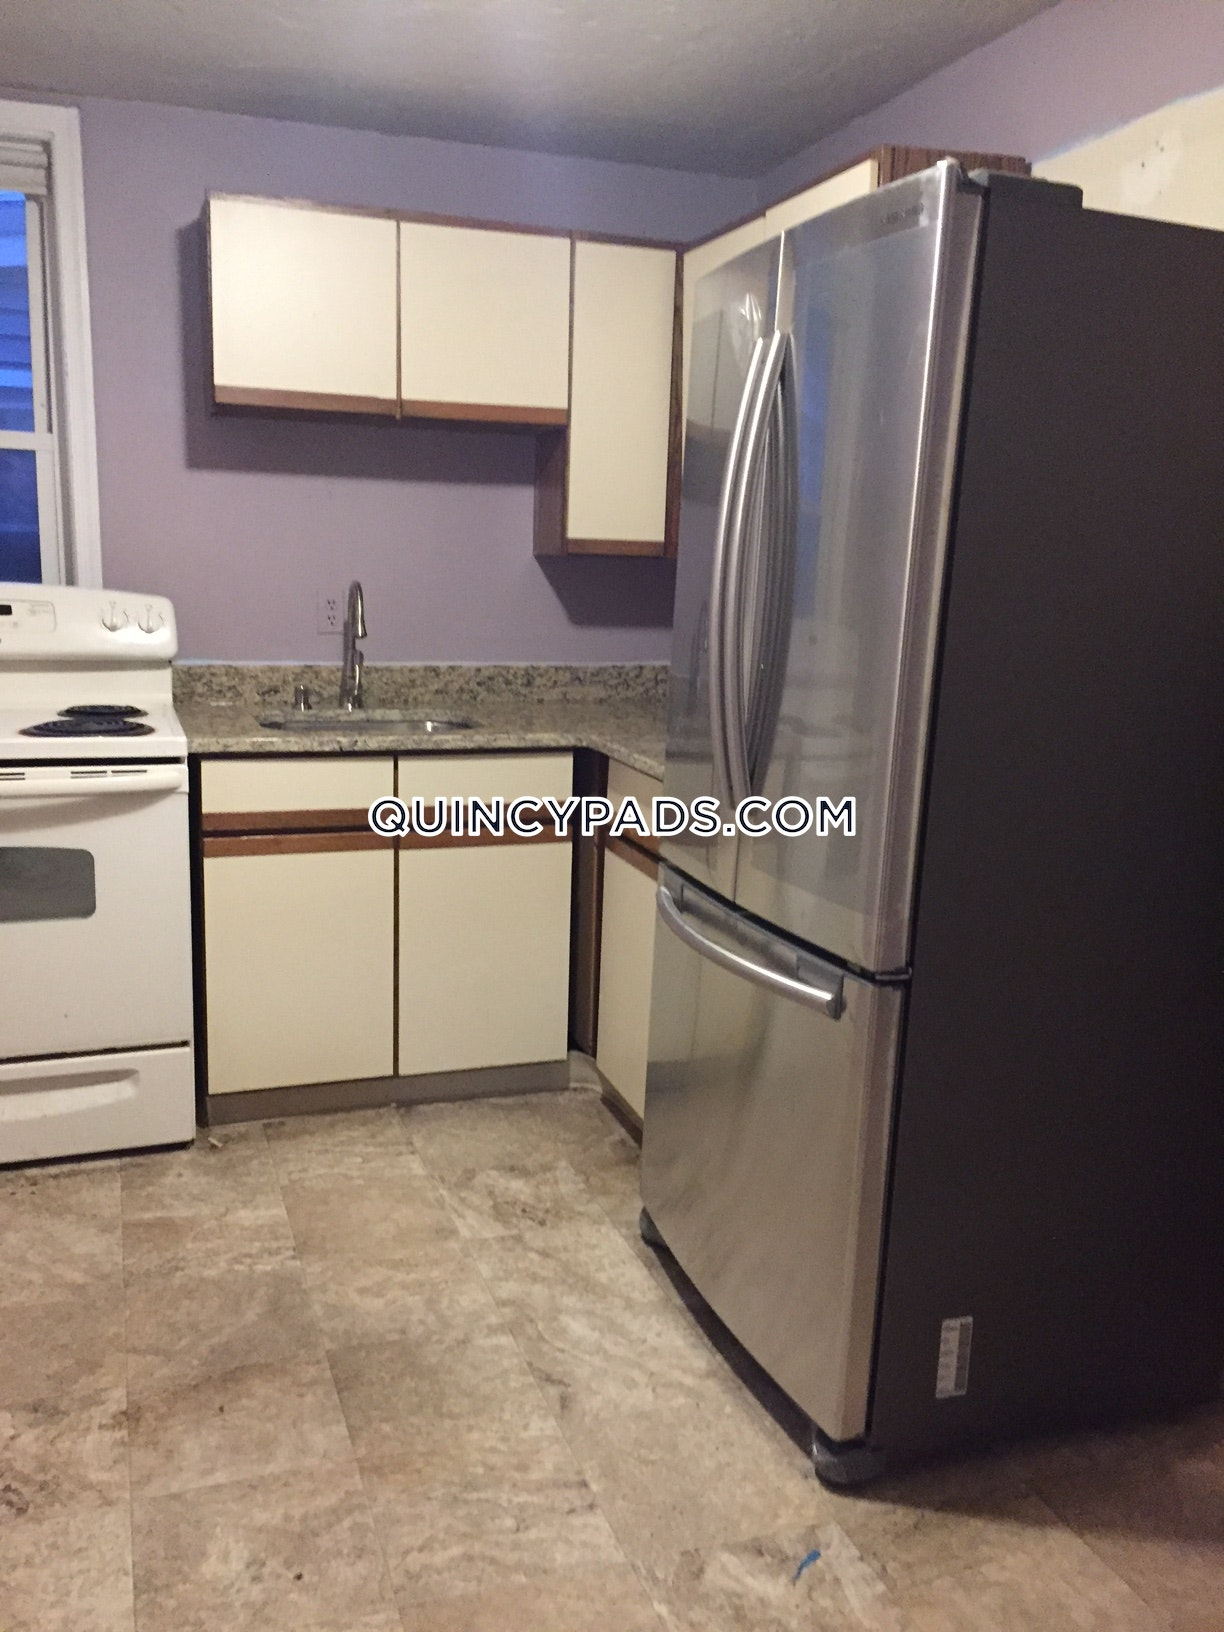 2 Beds 1 Bath - Quincy - Wollaston $1,750